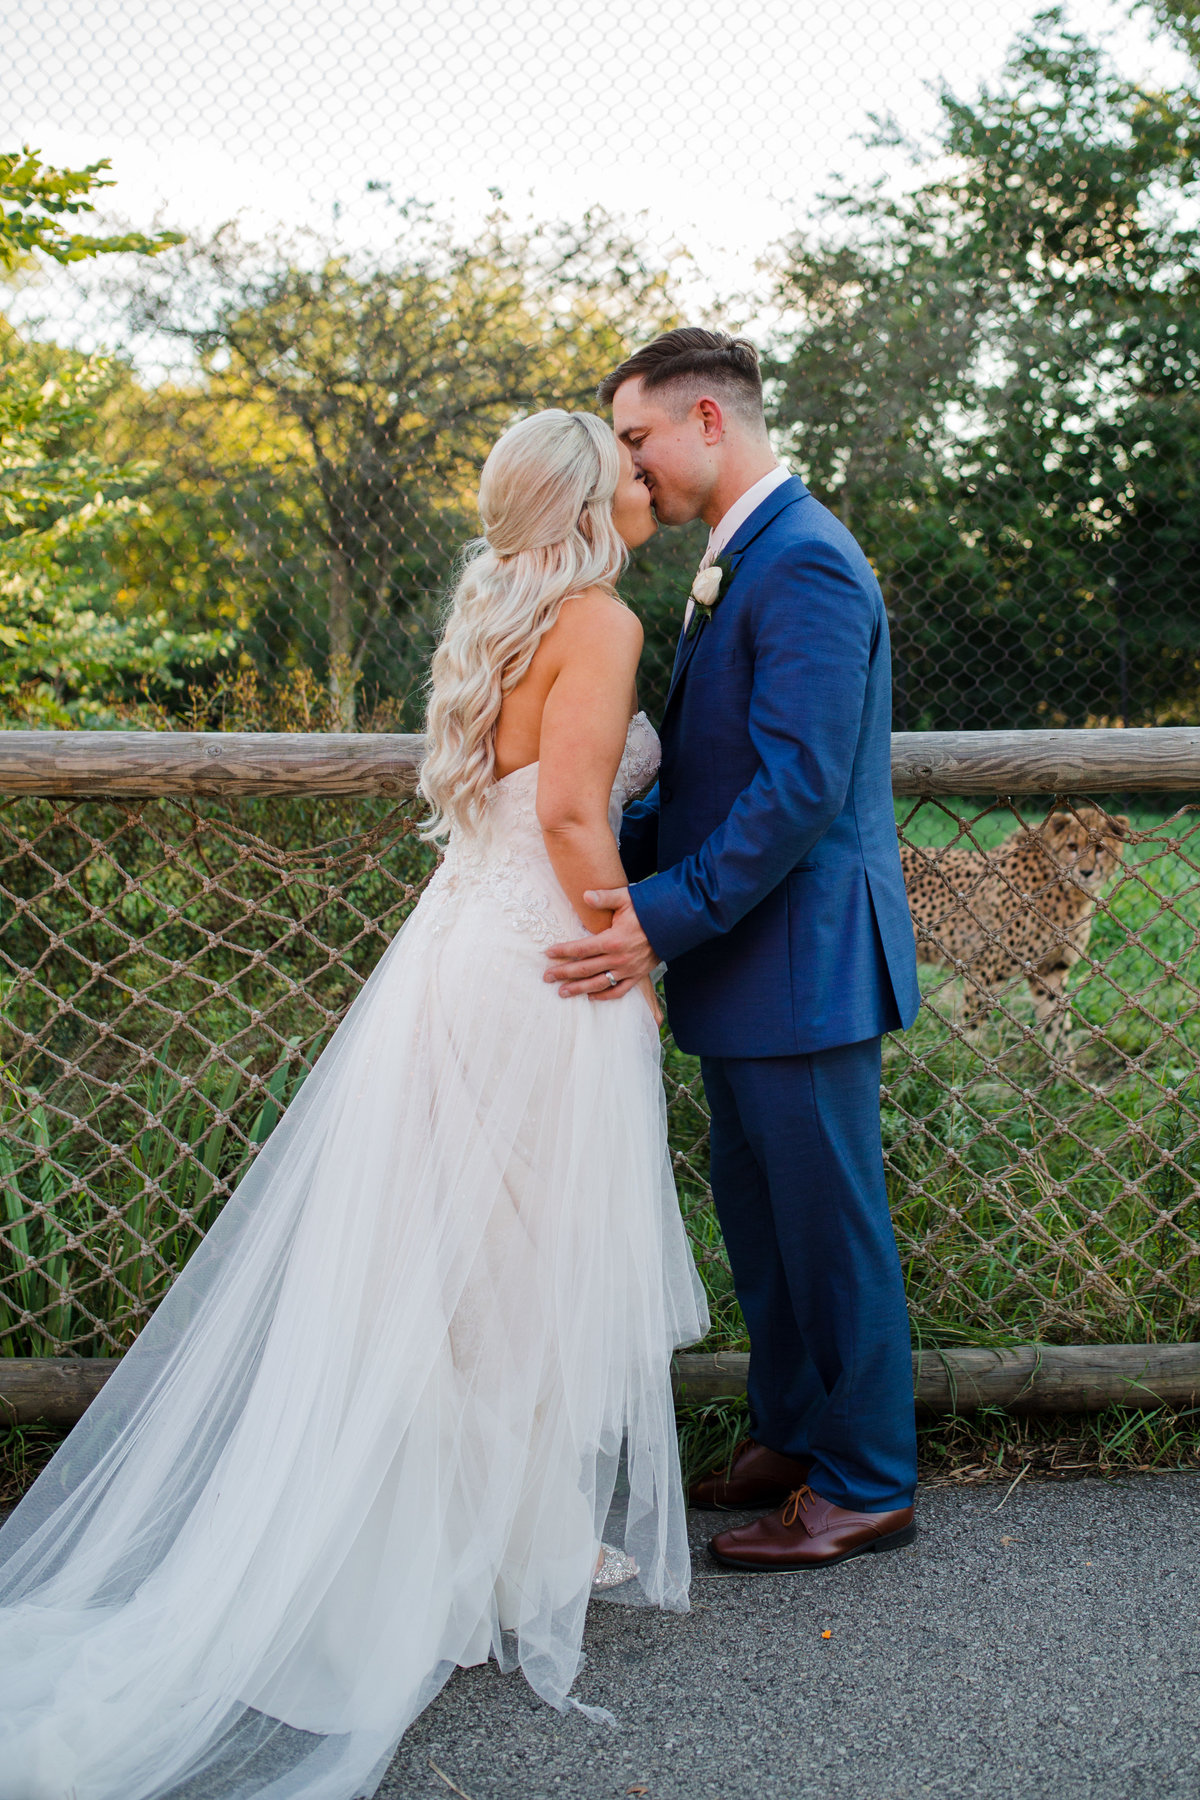 Unique pgh wedding photography156